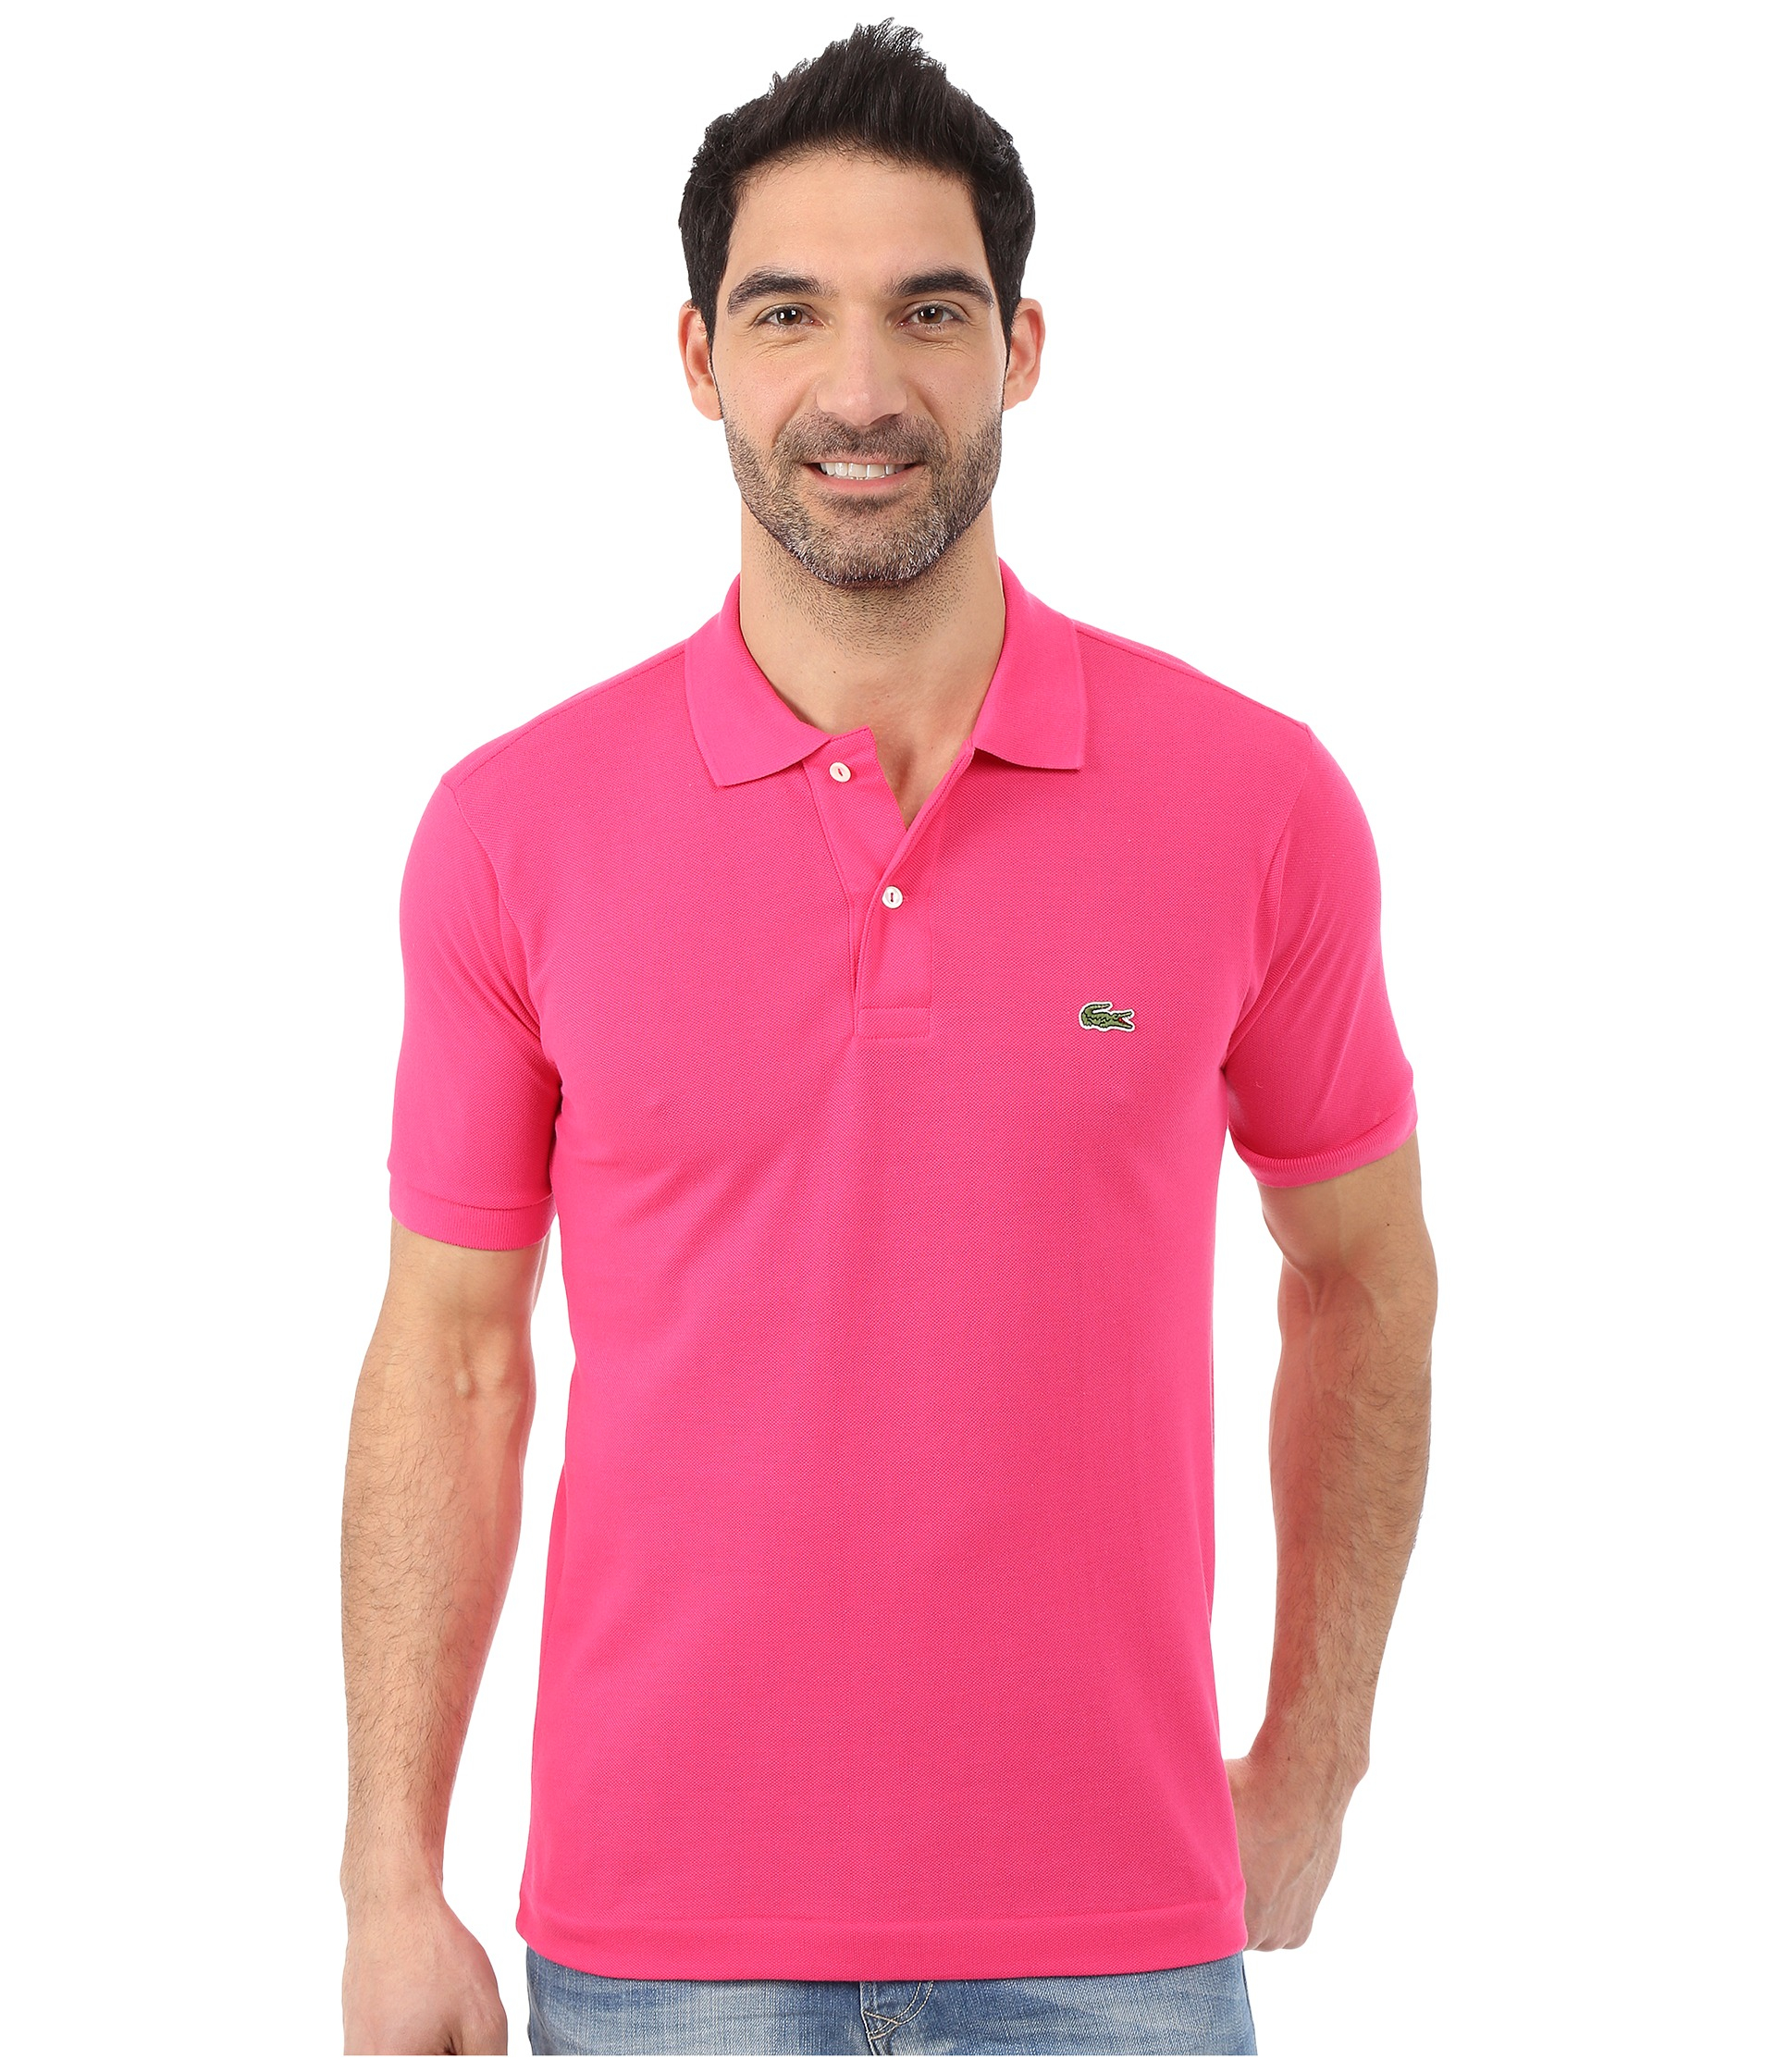 1c8a4dde79d Lacoste L1212 Classic Pique Polo Shirt in Pink for Men - Lyst